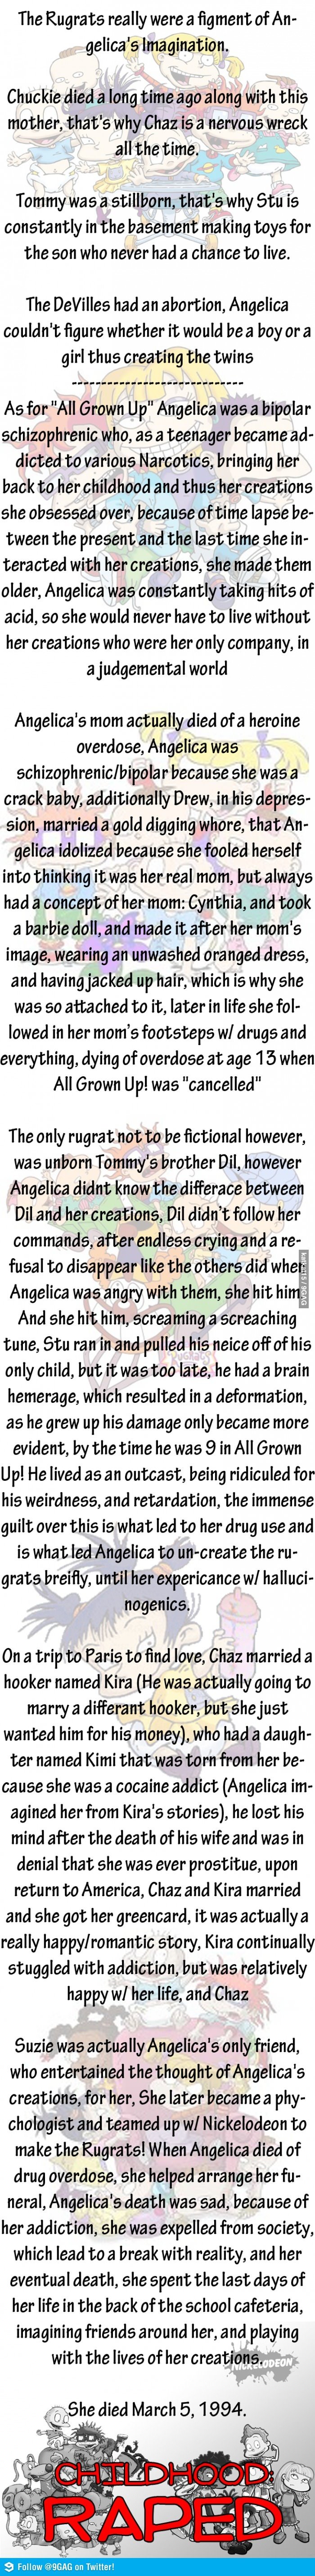 Rugrats were just a figment of Angelica's Imagination @Alex Jones Brown @shelby c Charf this is so missed up? Is this real?